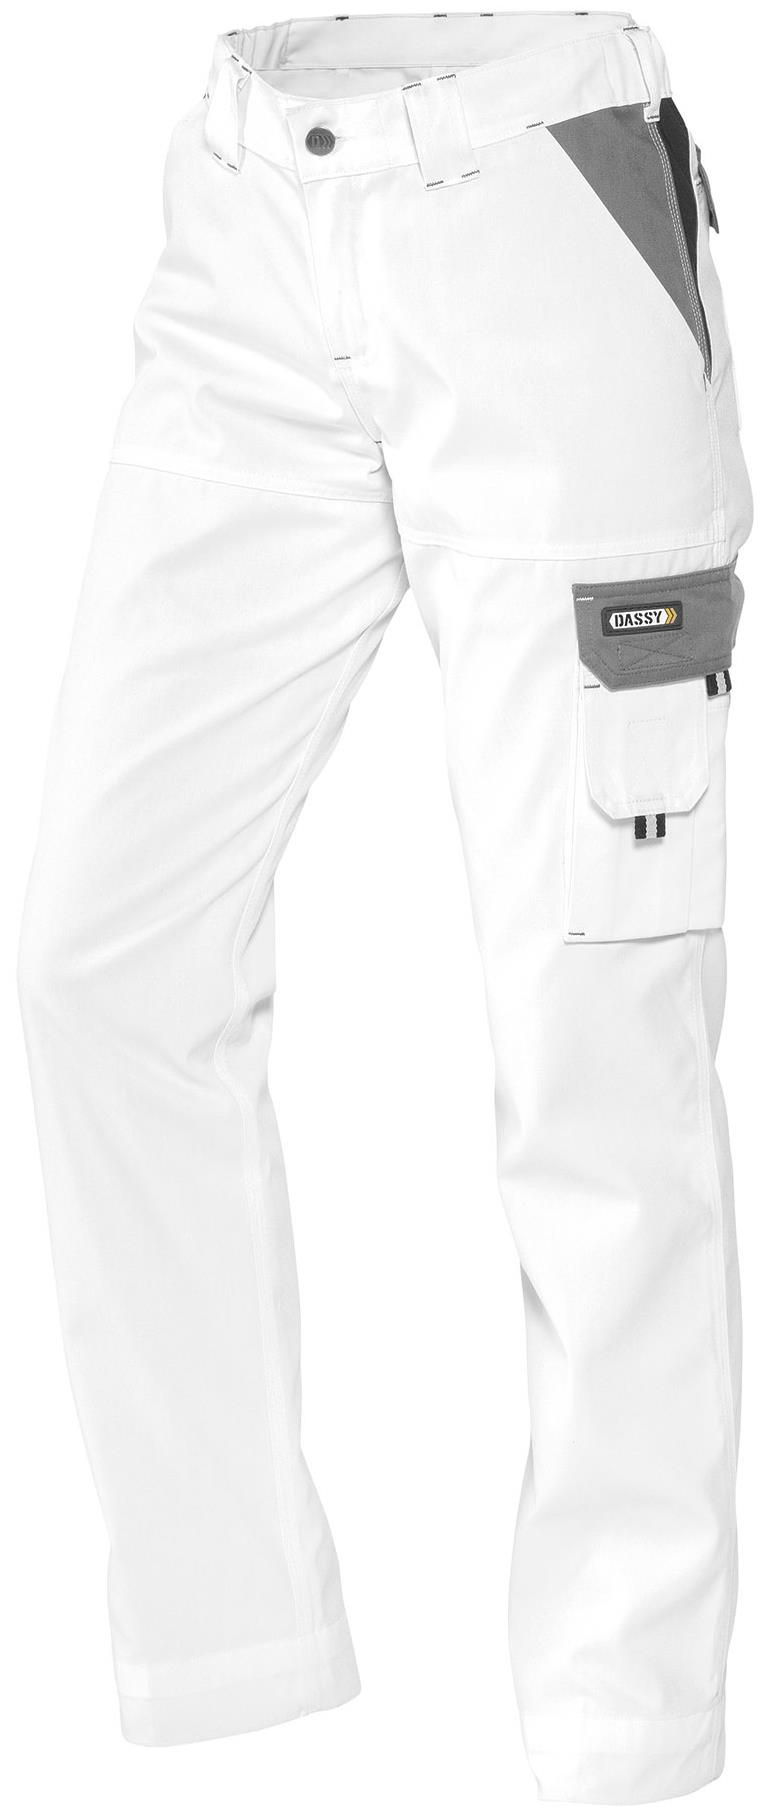 Dassy Nashville Womens Work Trousers